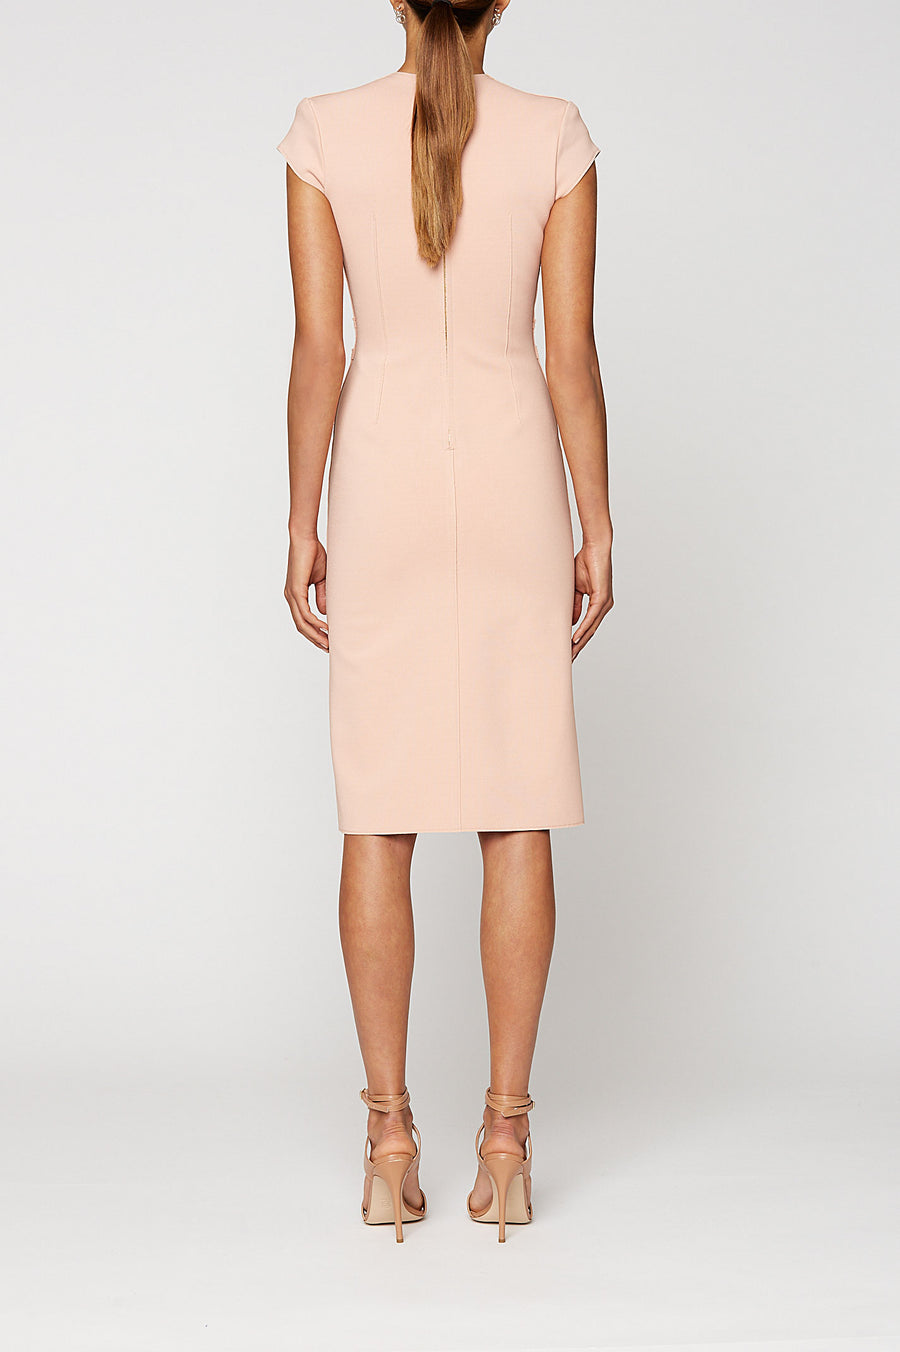 MILANO CREPE TURBAN DRESS, V-NECK, FALLS JUST BELOW KNEE, SHOULDER PADS, KNOT AT FRONT, DUSTY ROSE color